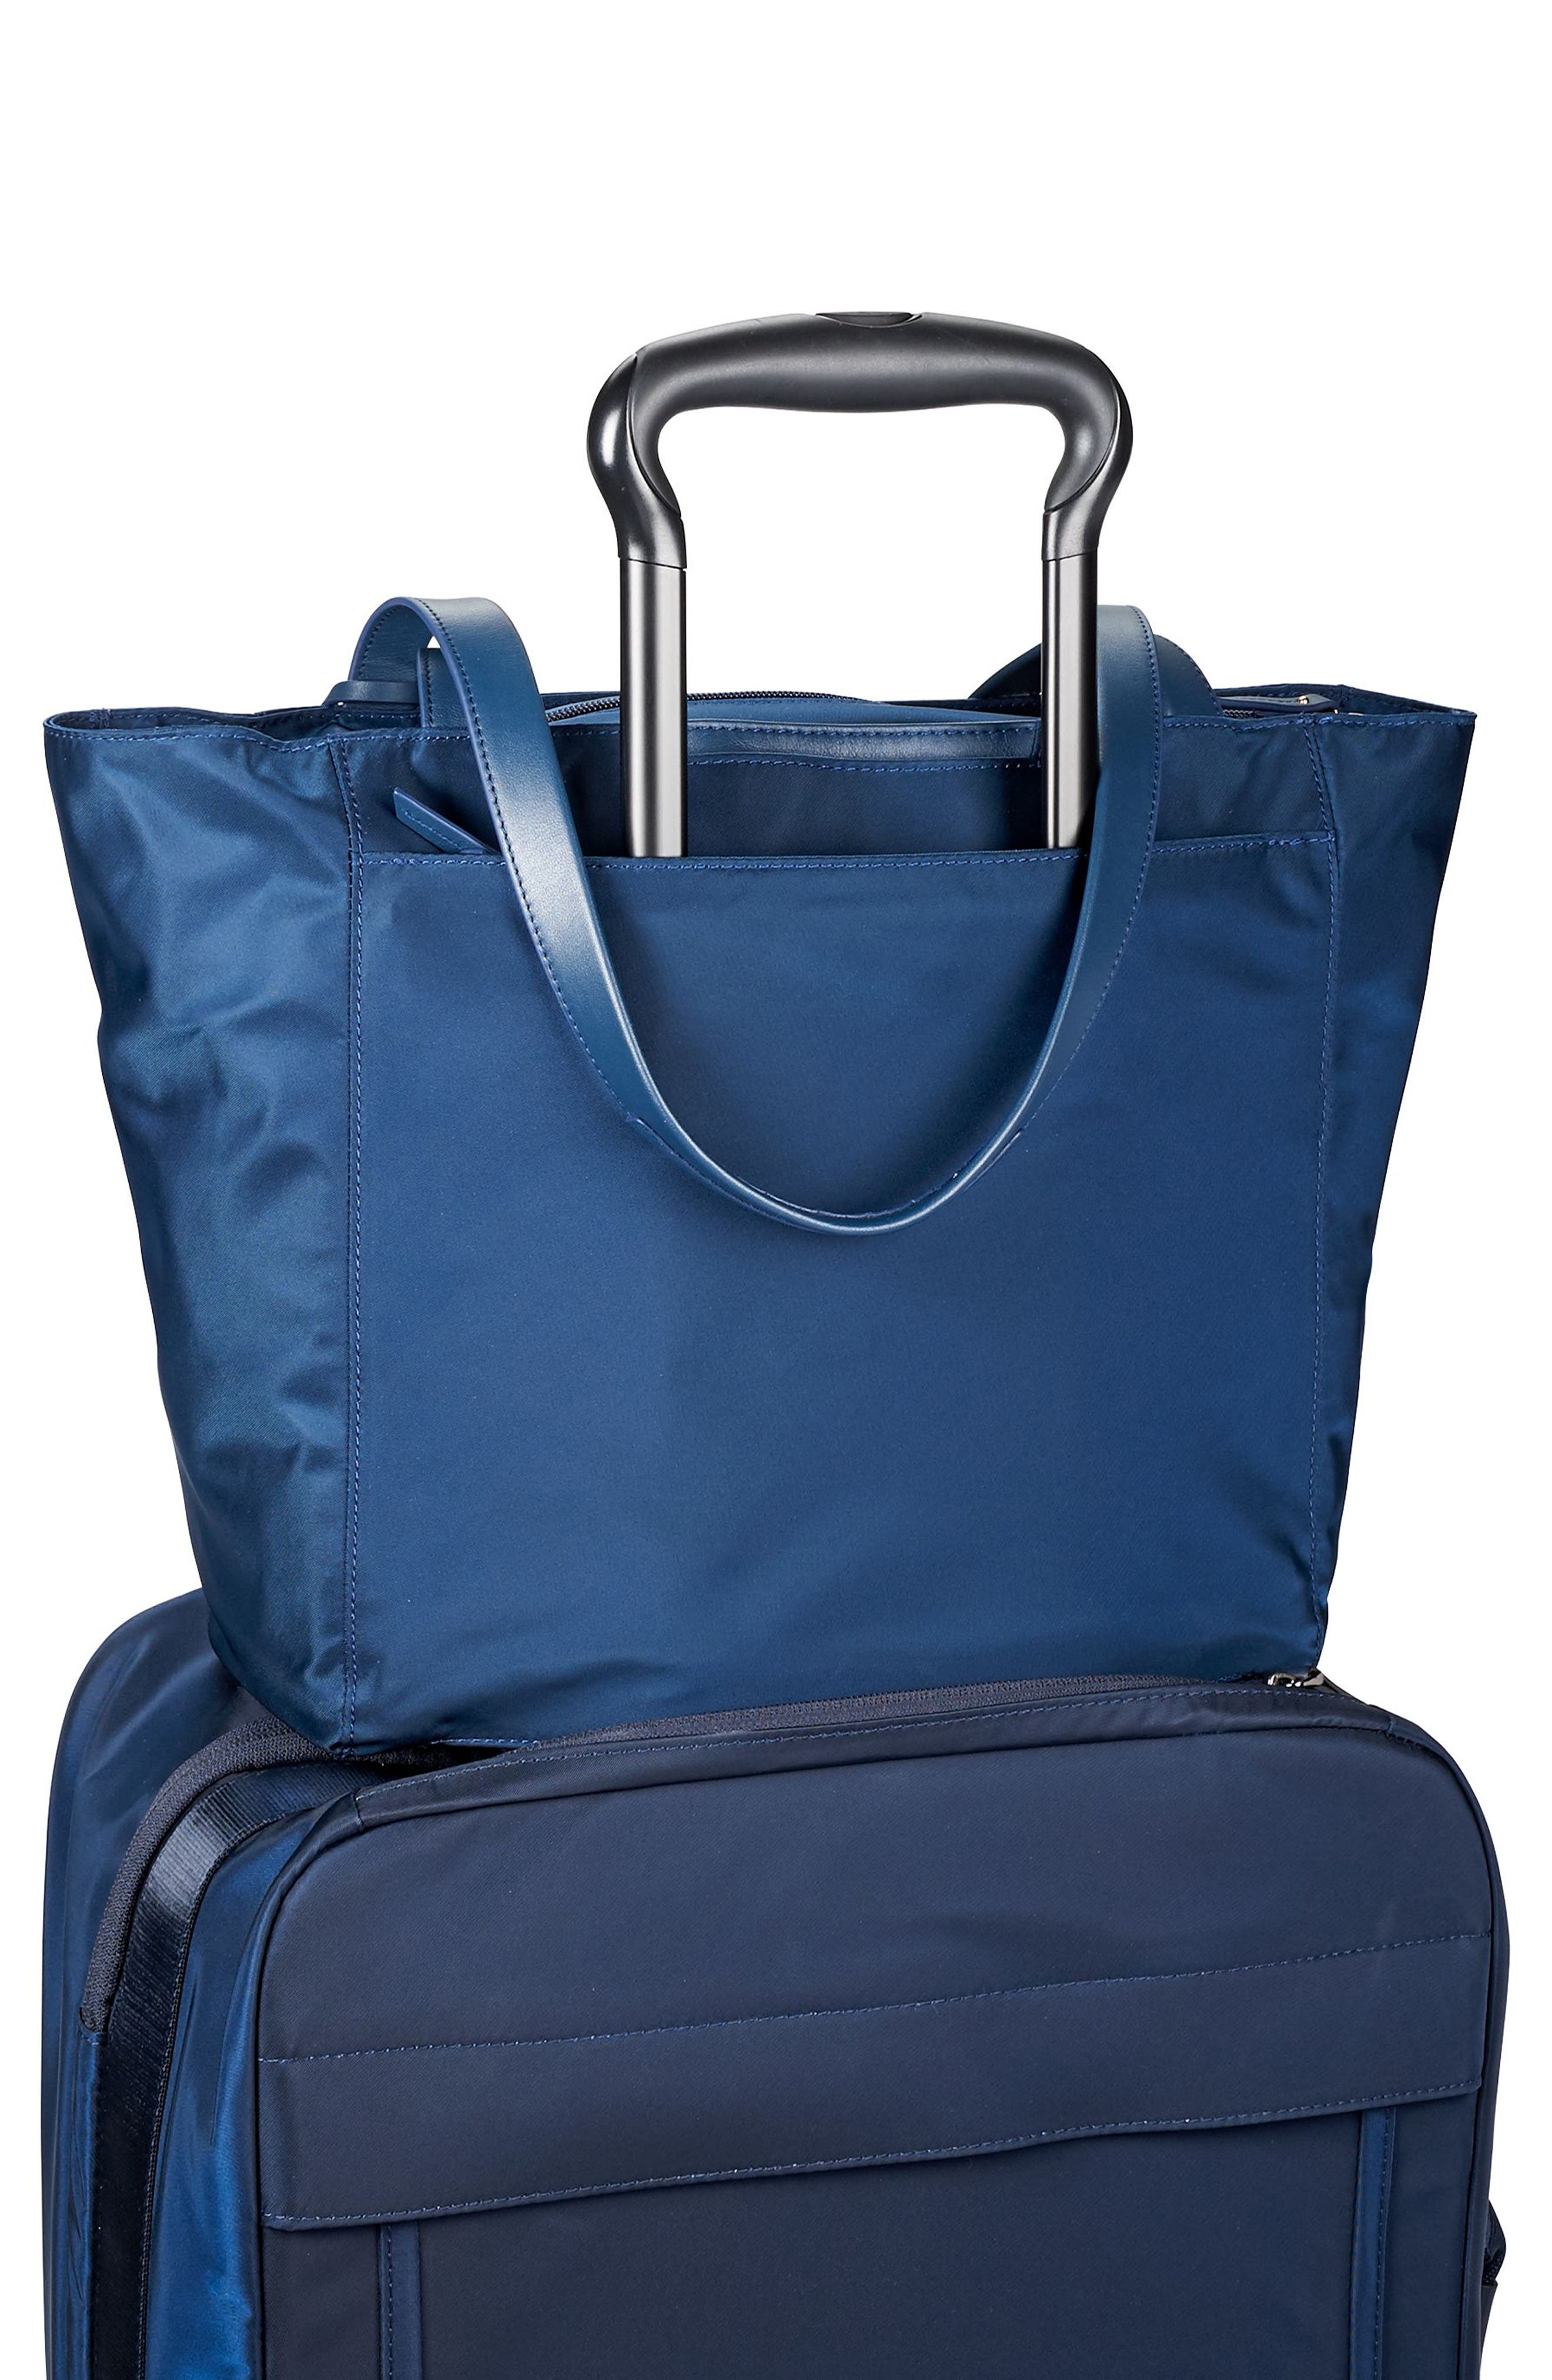 Small M-Tote Nylon Tote,                             Alternate thumbnail 6, color,                             Ocean Blue